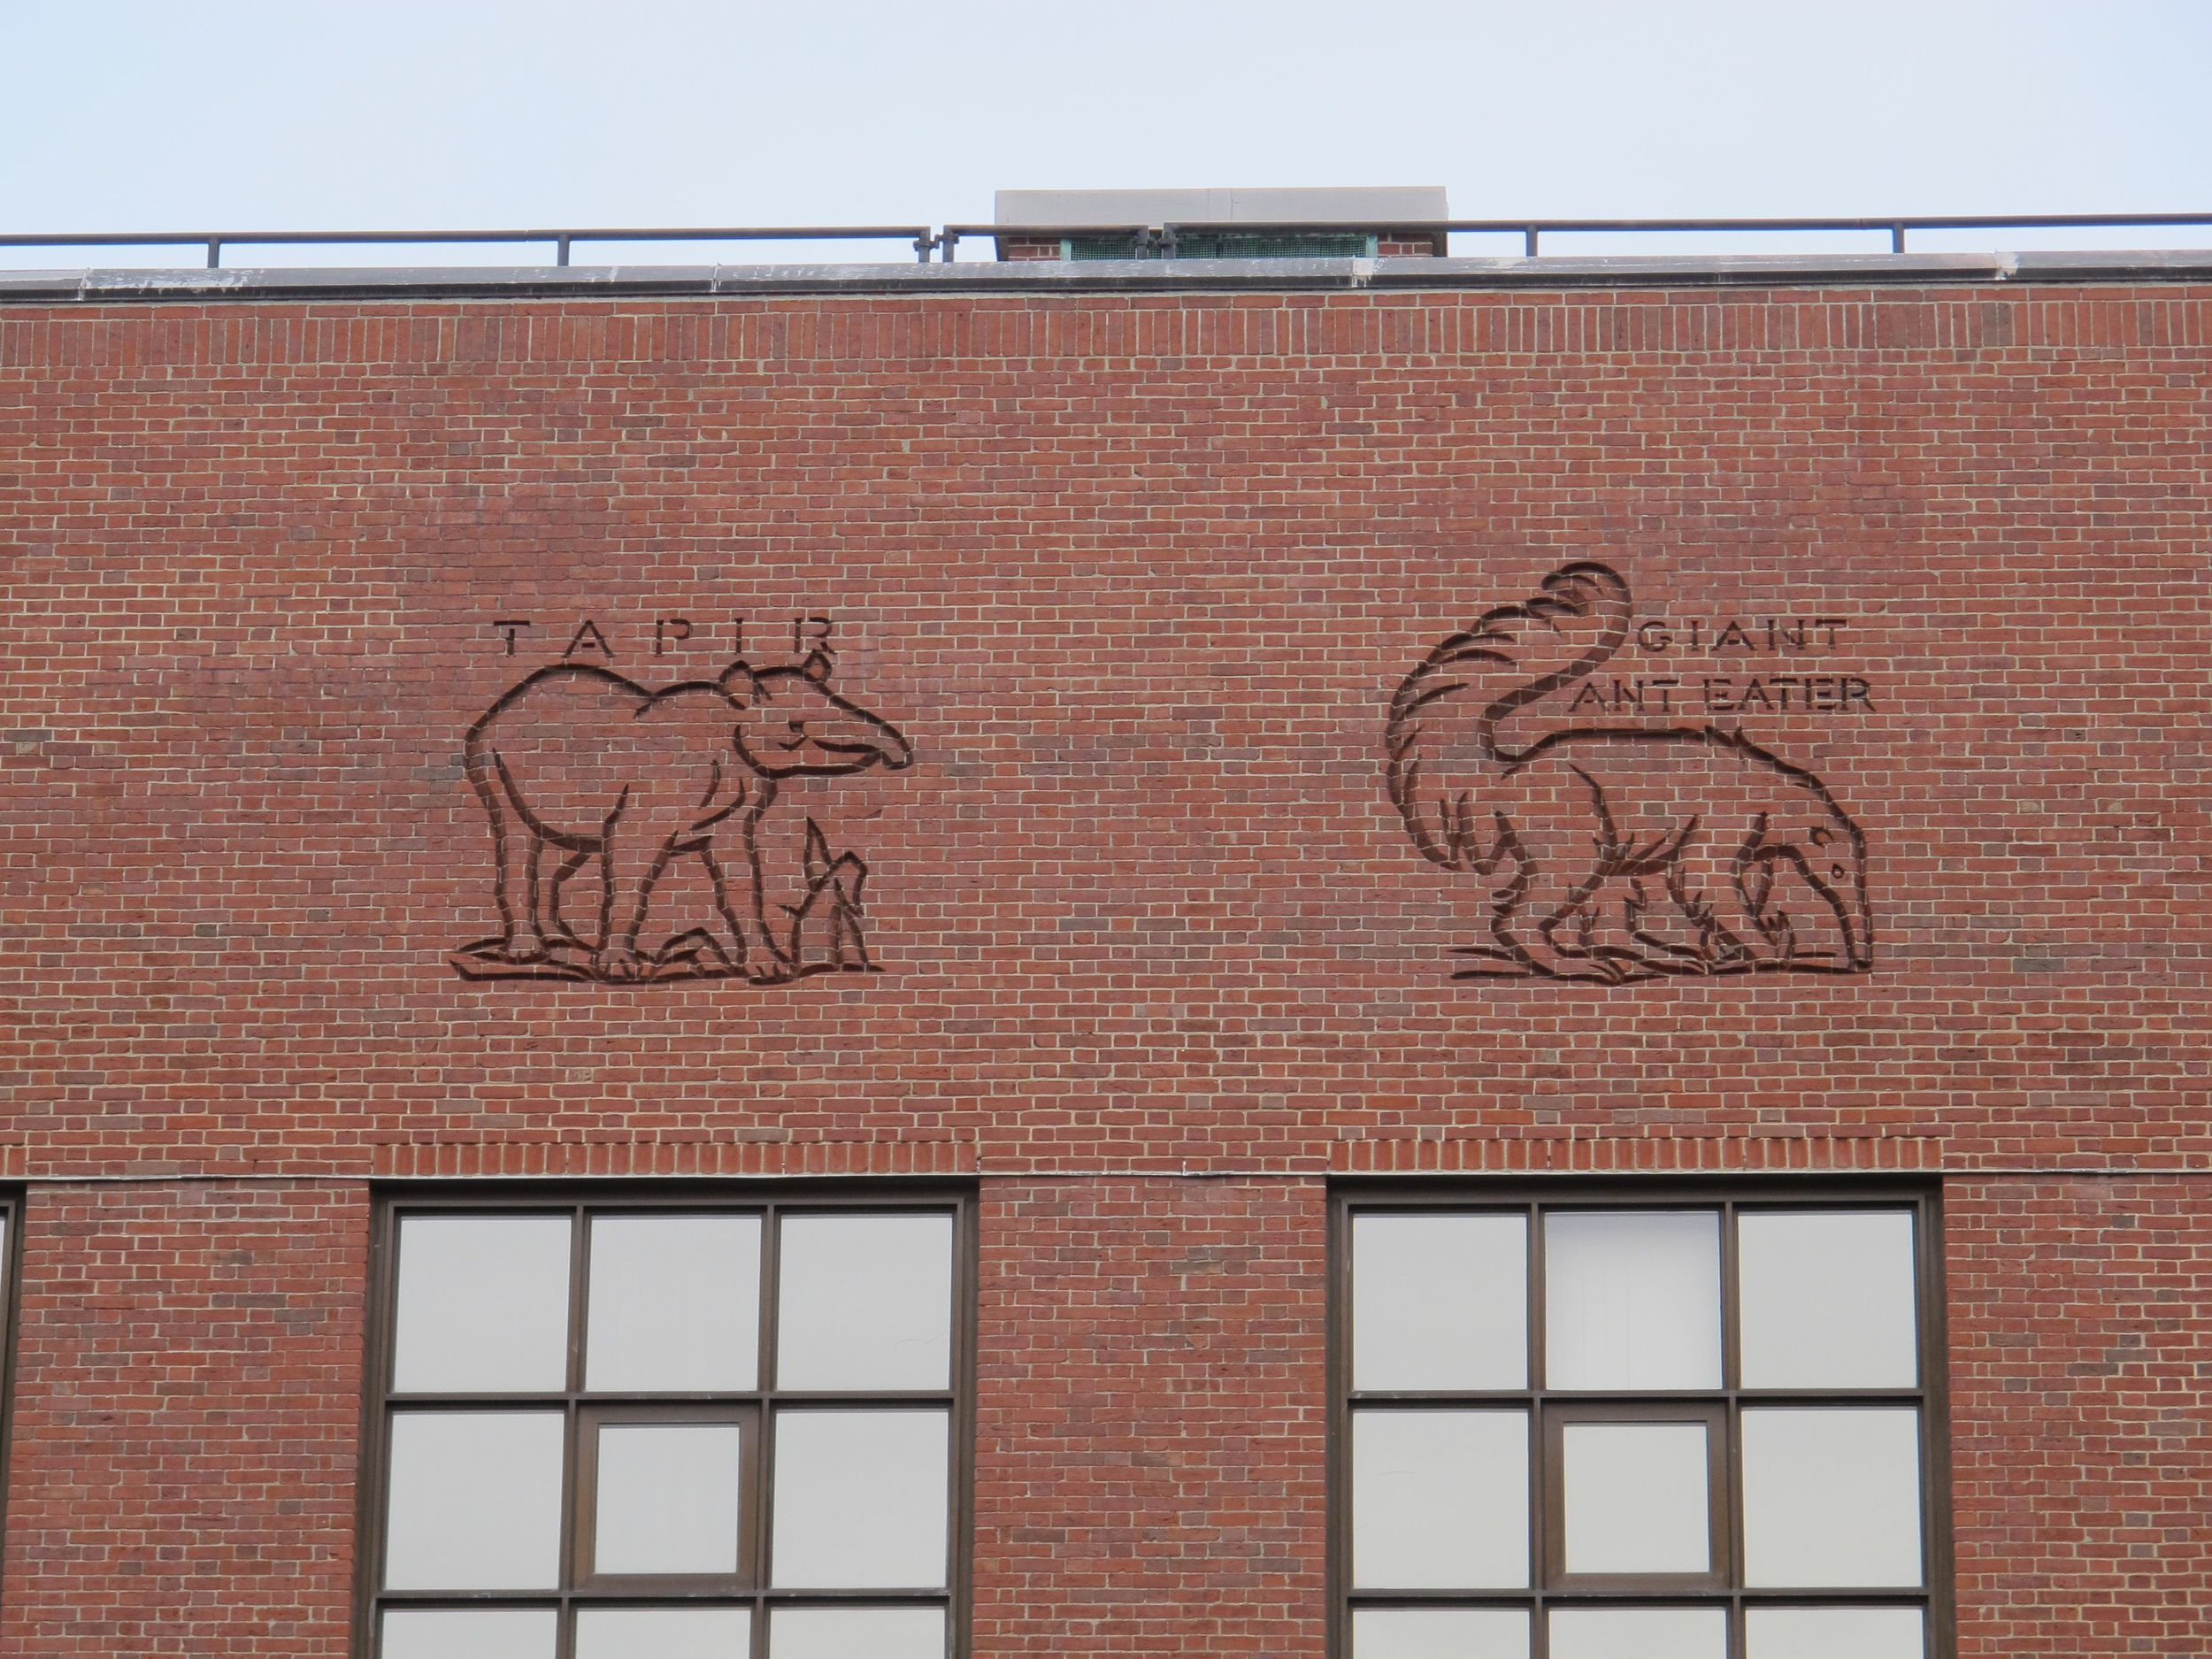 The animal frieze was carved into the brick face of the Bio Lab by workers during the Great Depression.